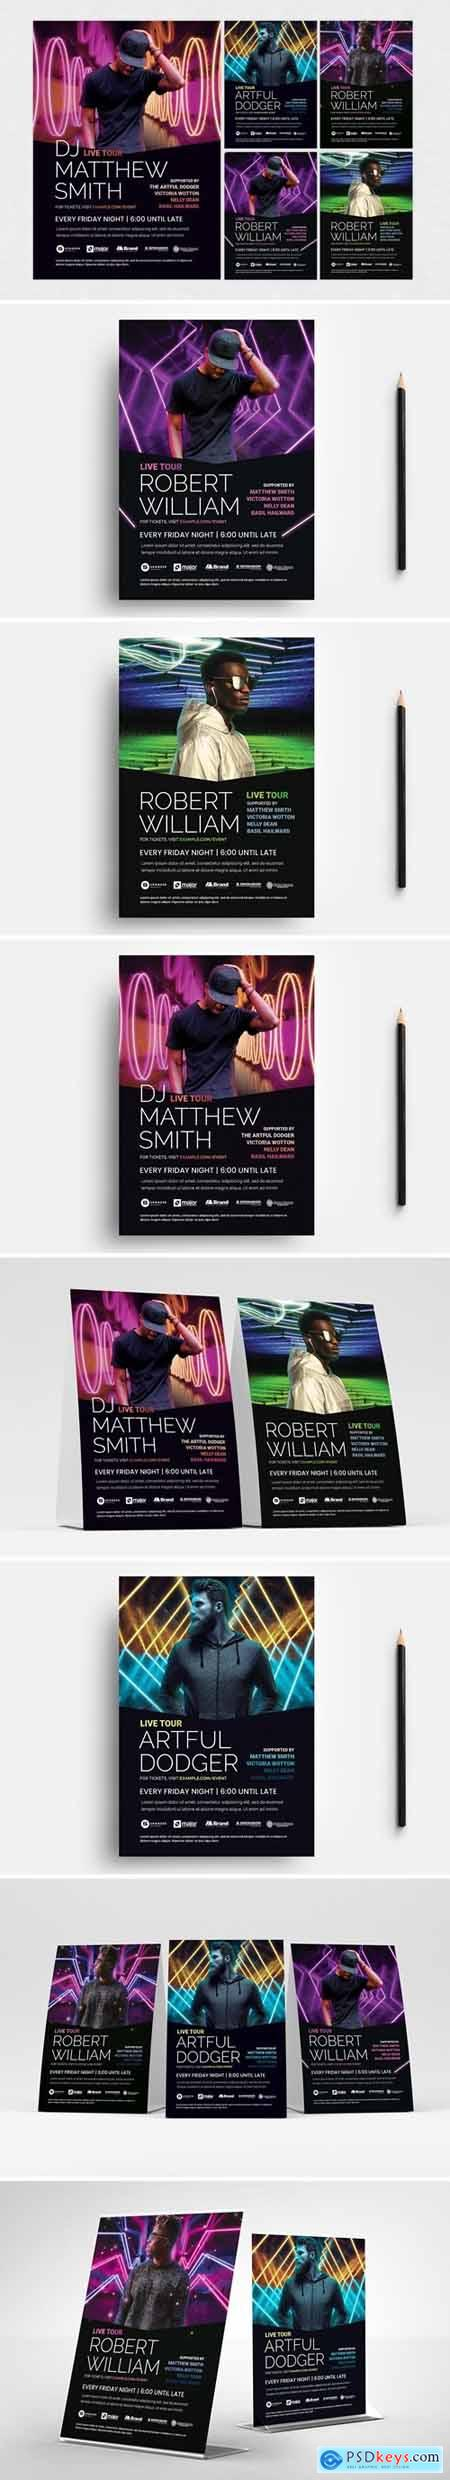 Neon DJ Flyer Templates